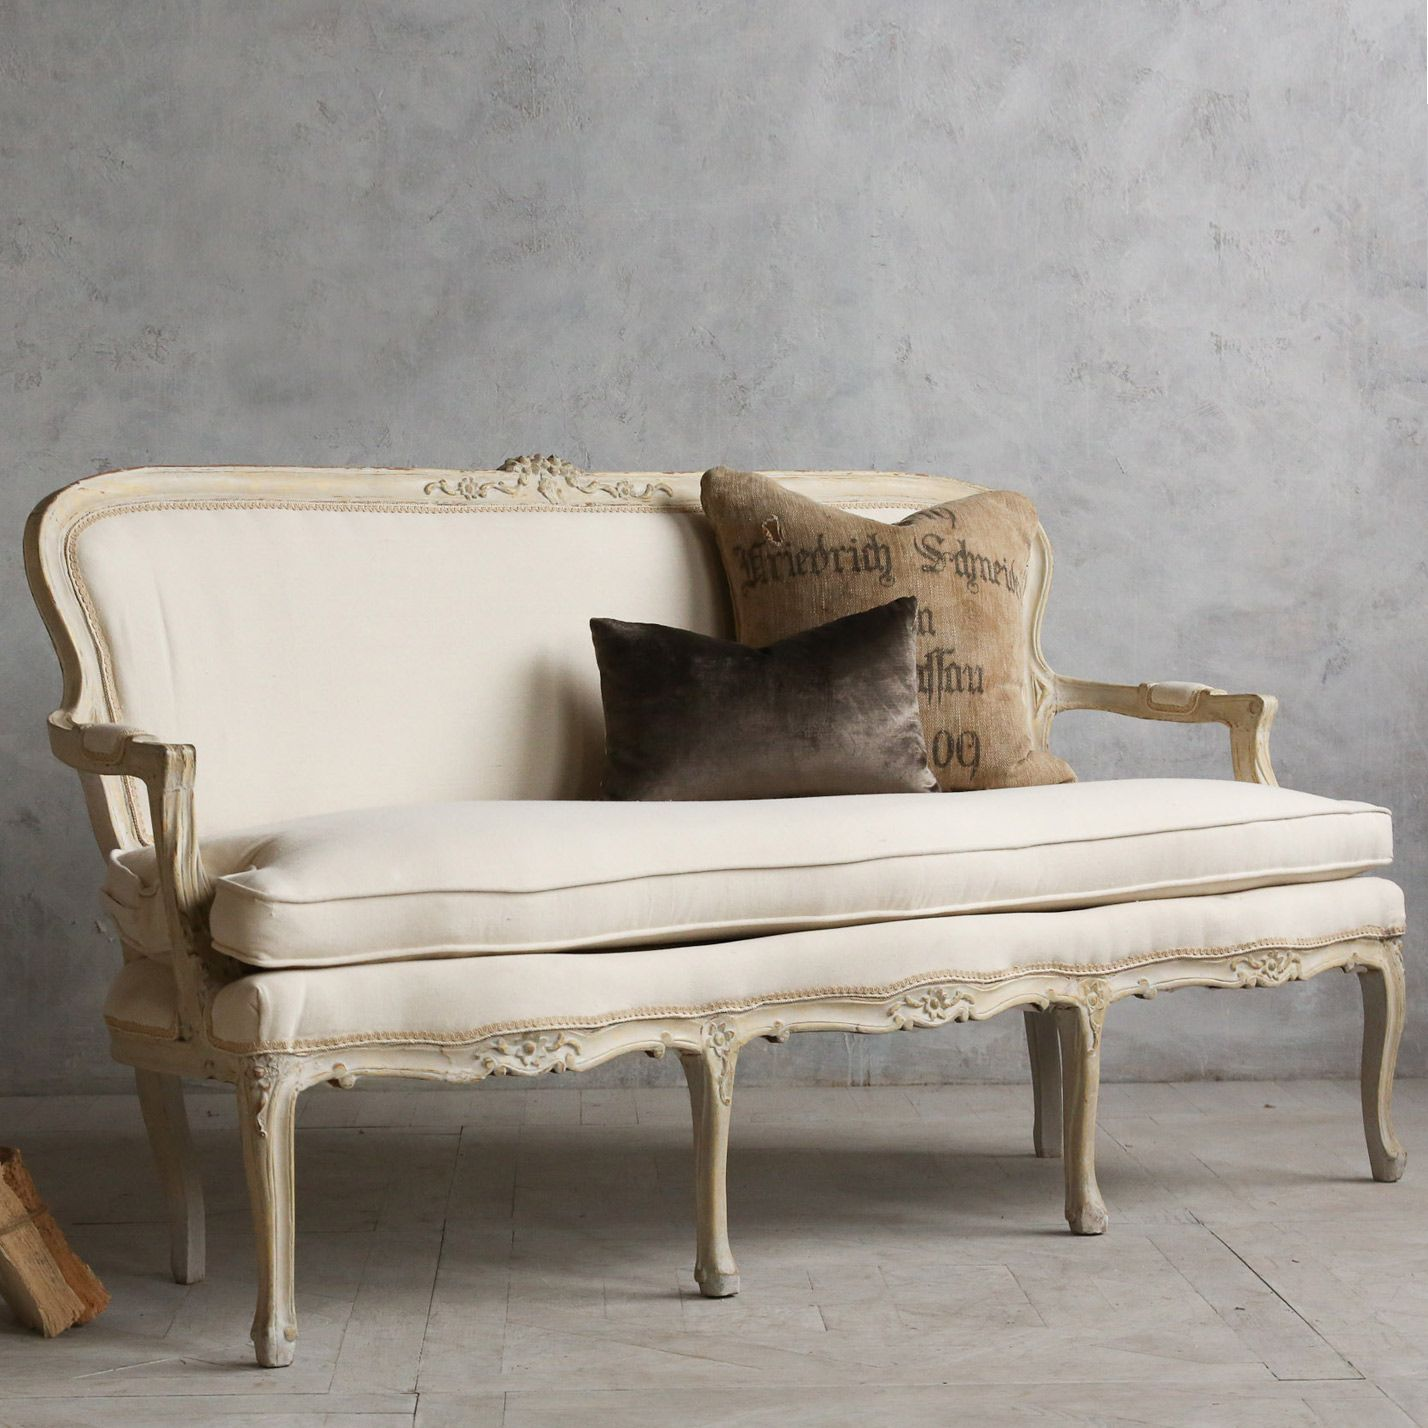 Eloquence One of a Kind Vintage Settee Louis XV Sandy Cream @Layla Grayce